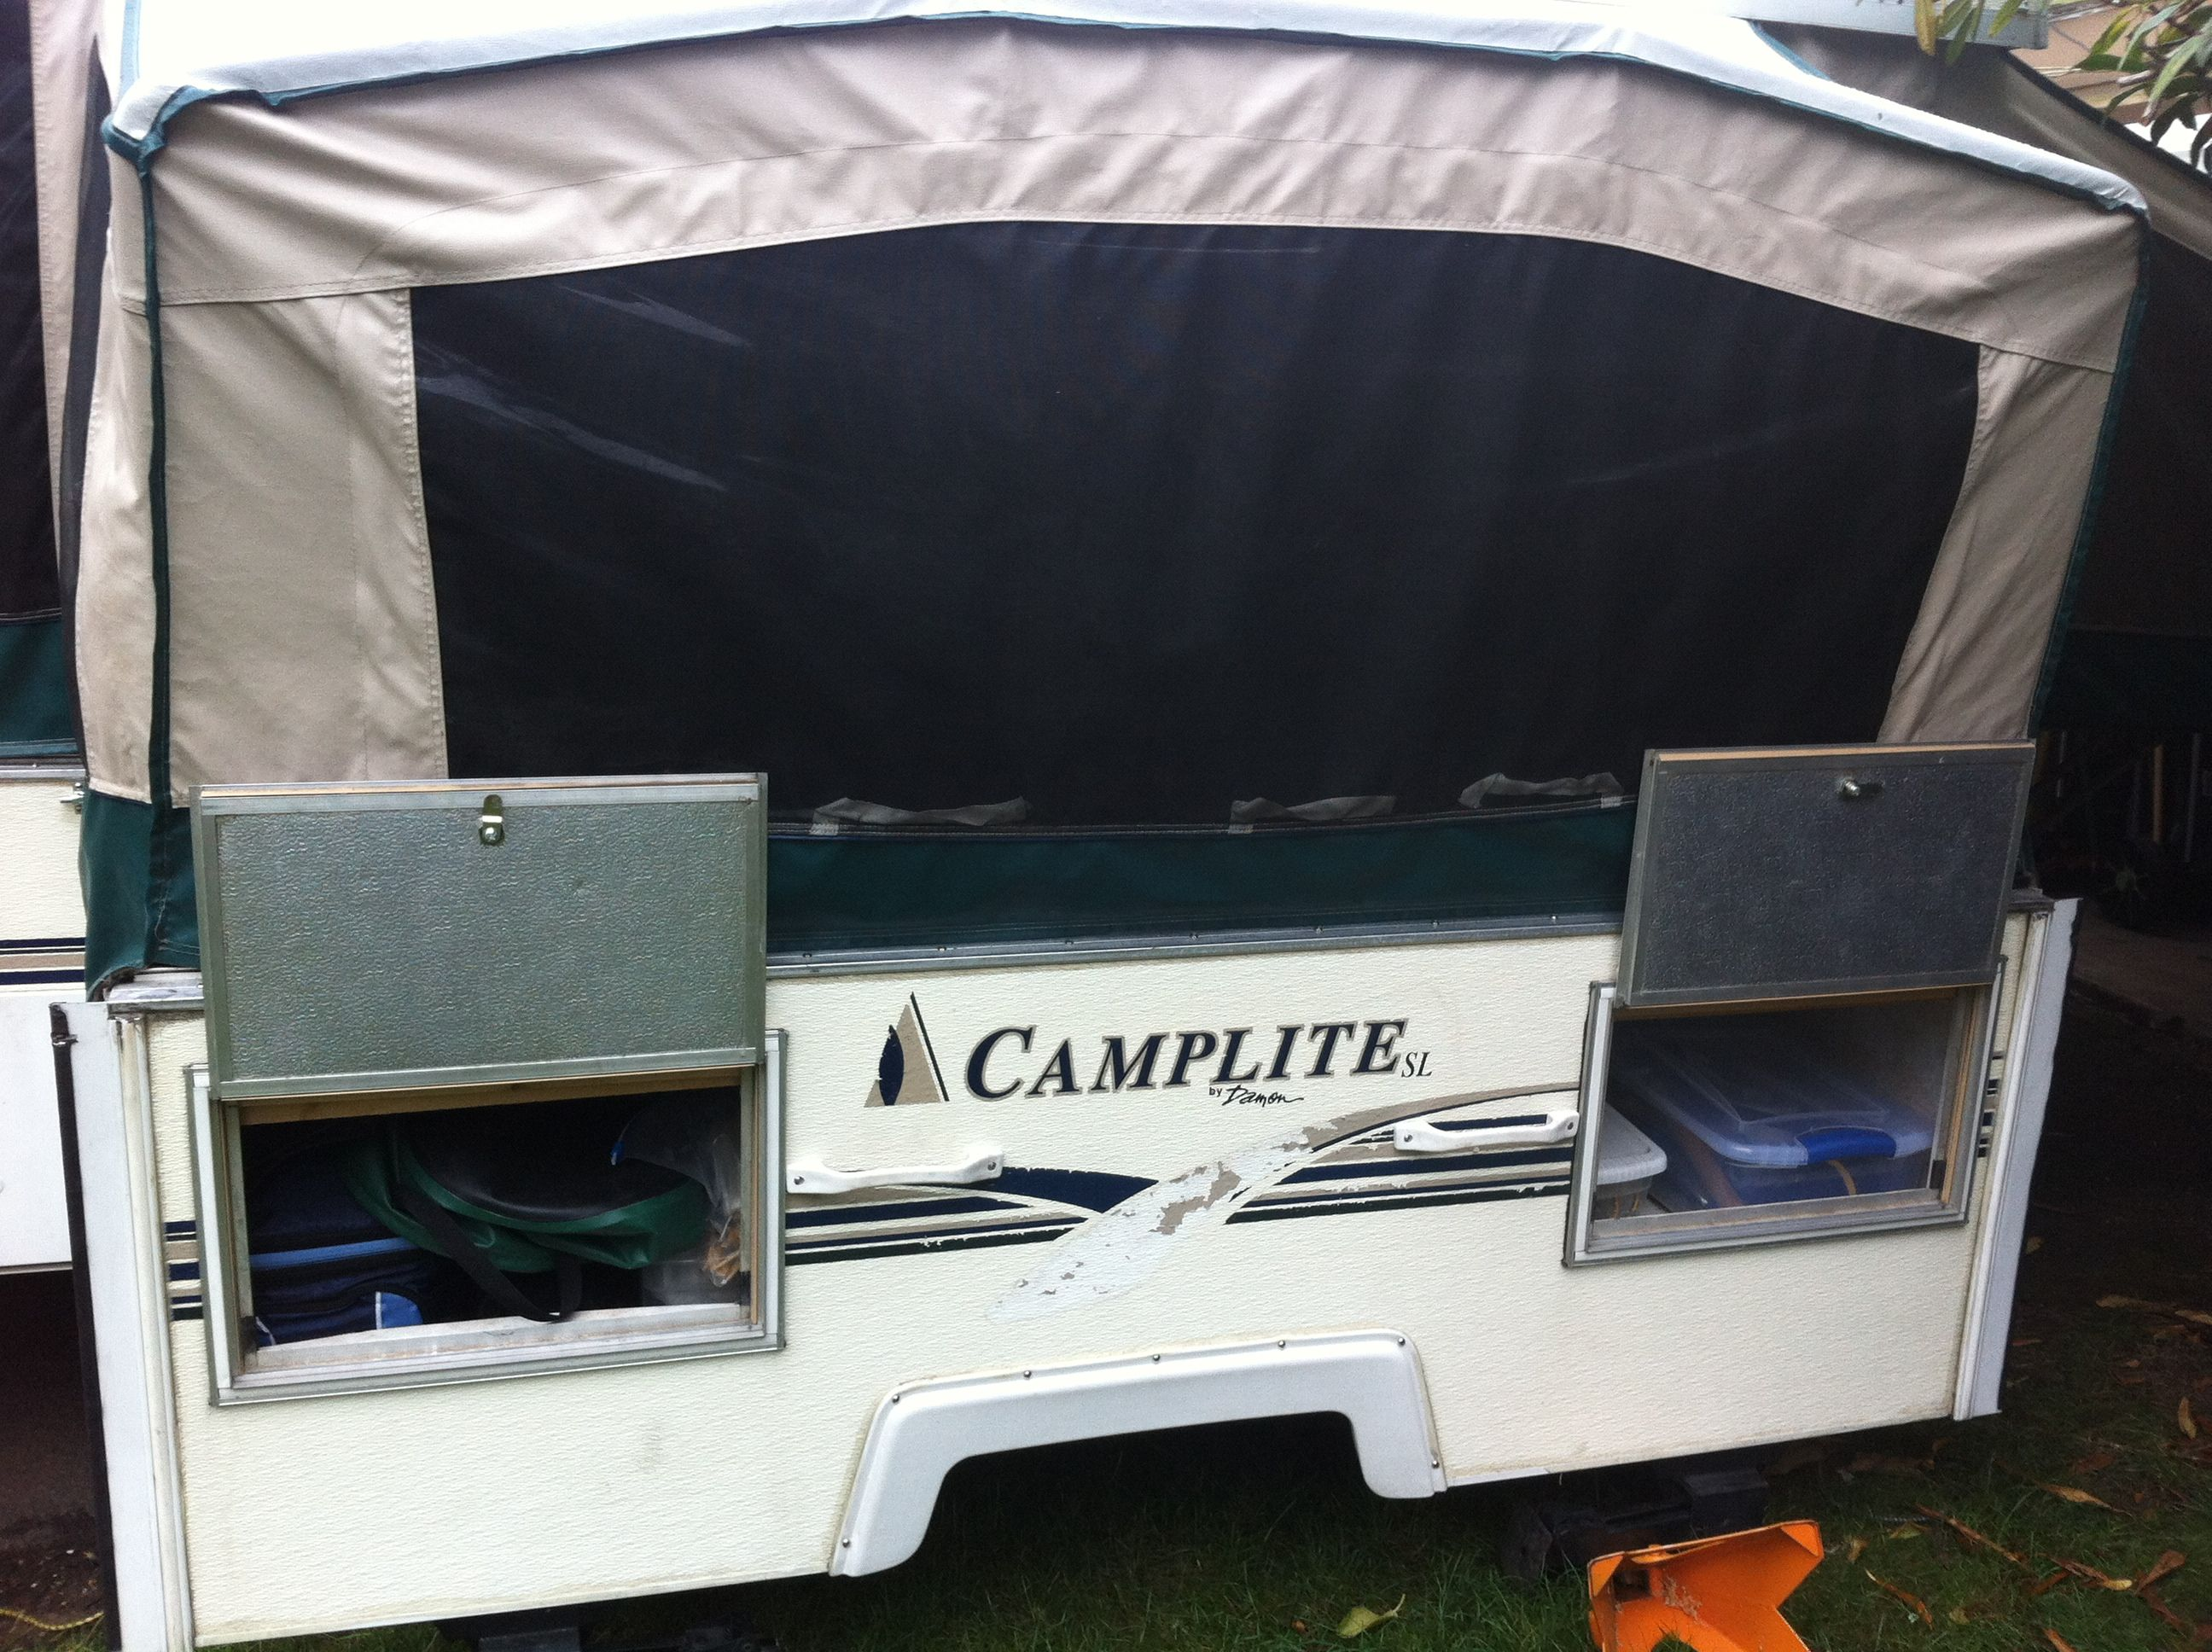 Pin by Jaci on Pop up tent trailer camper ideas amp; modifications Pin